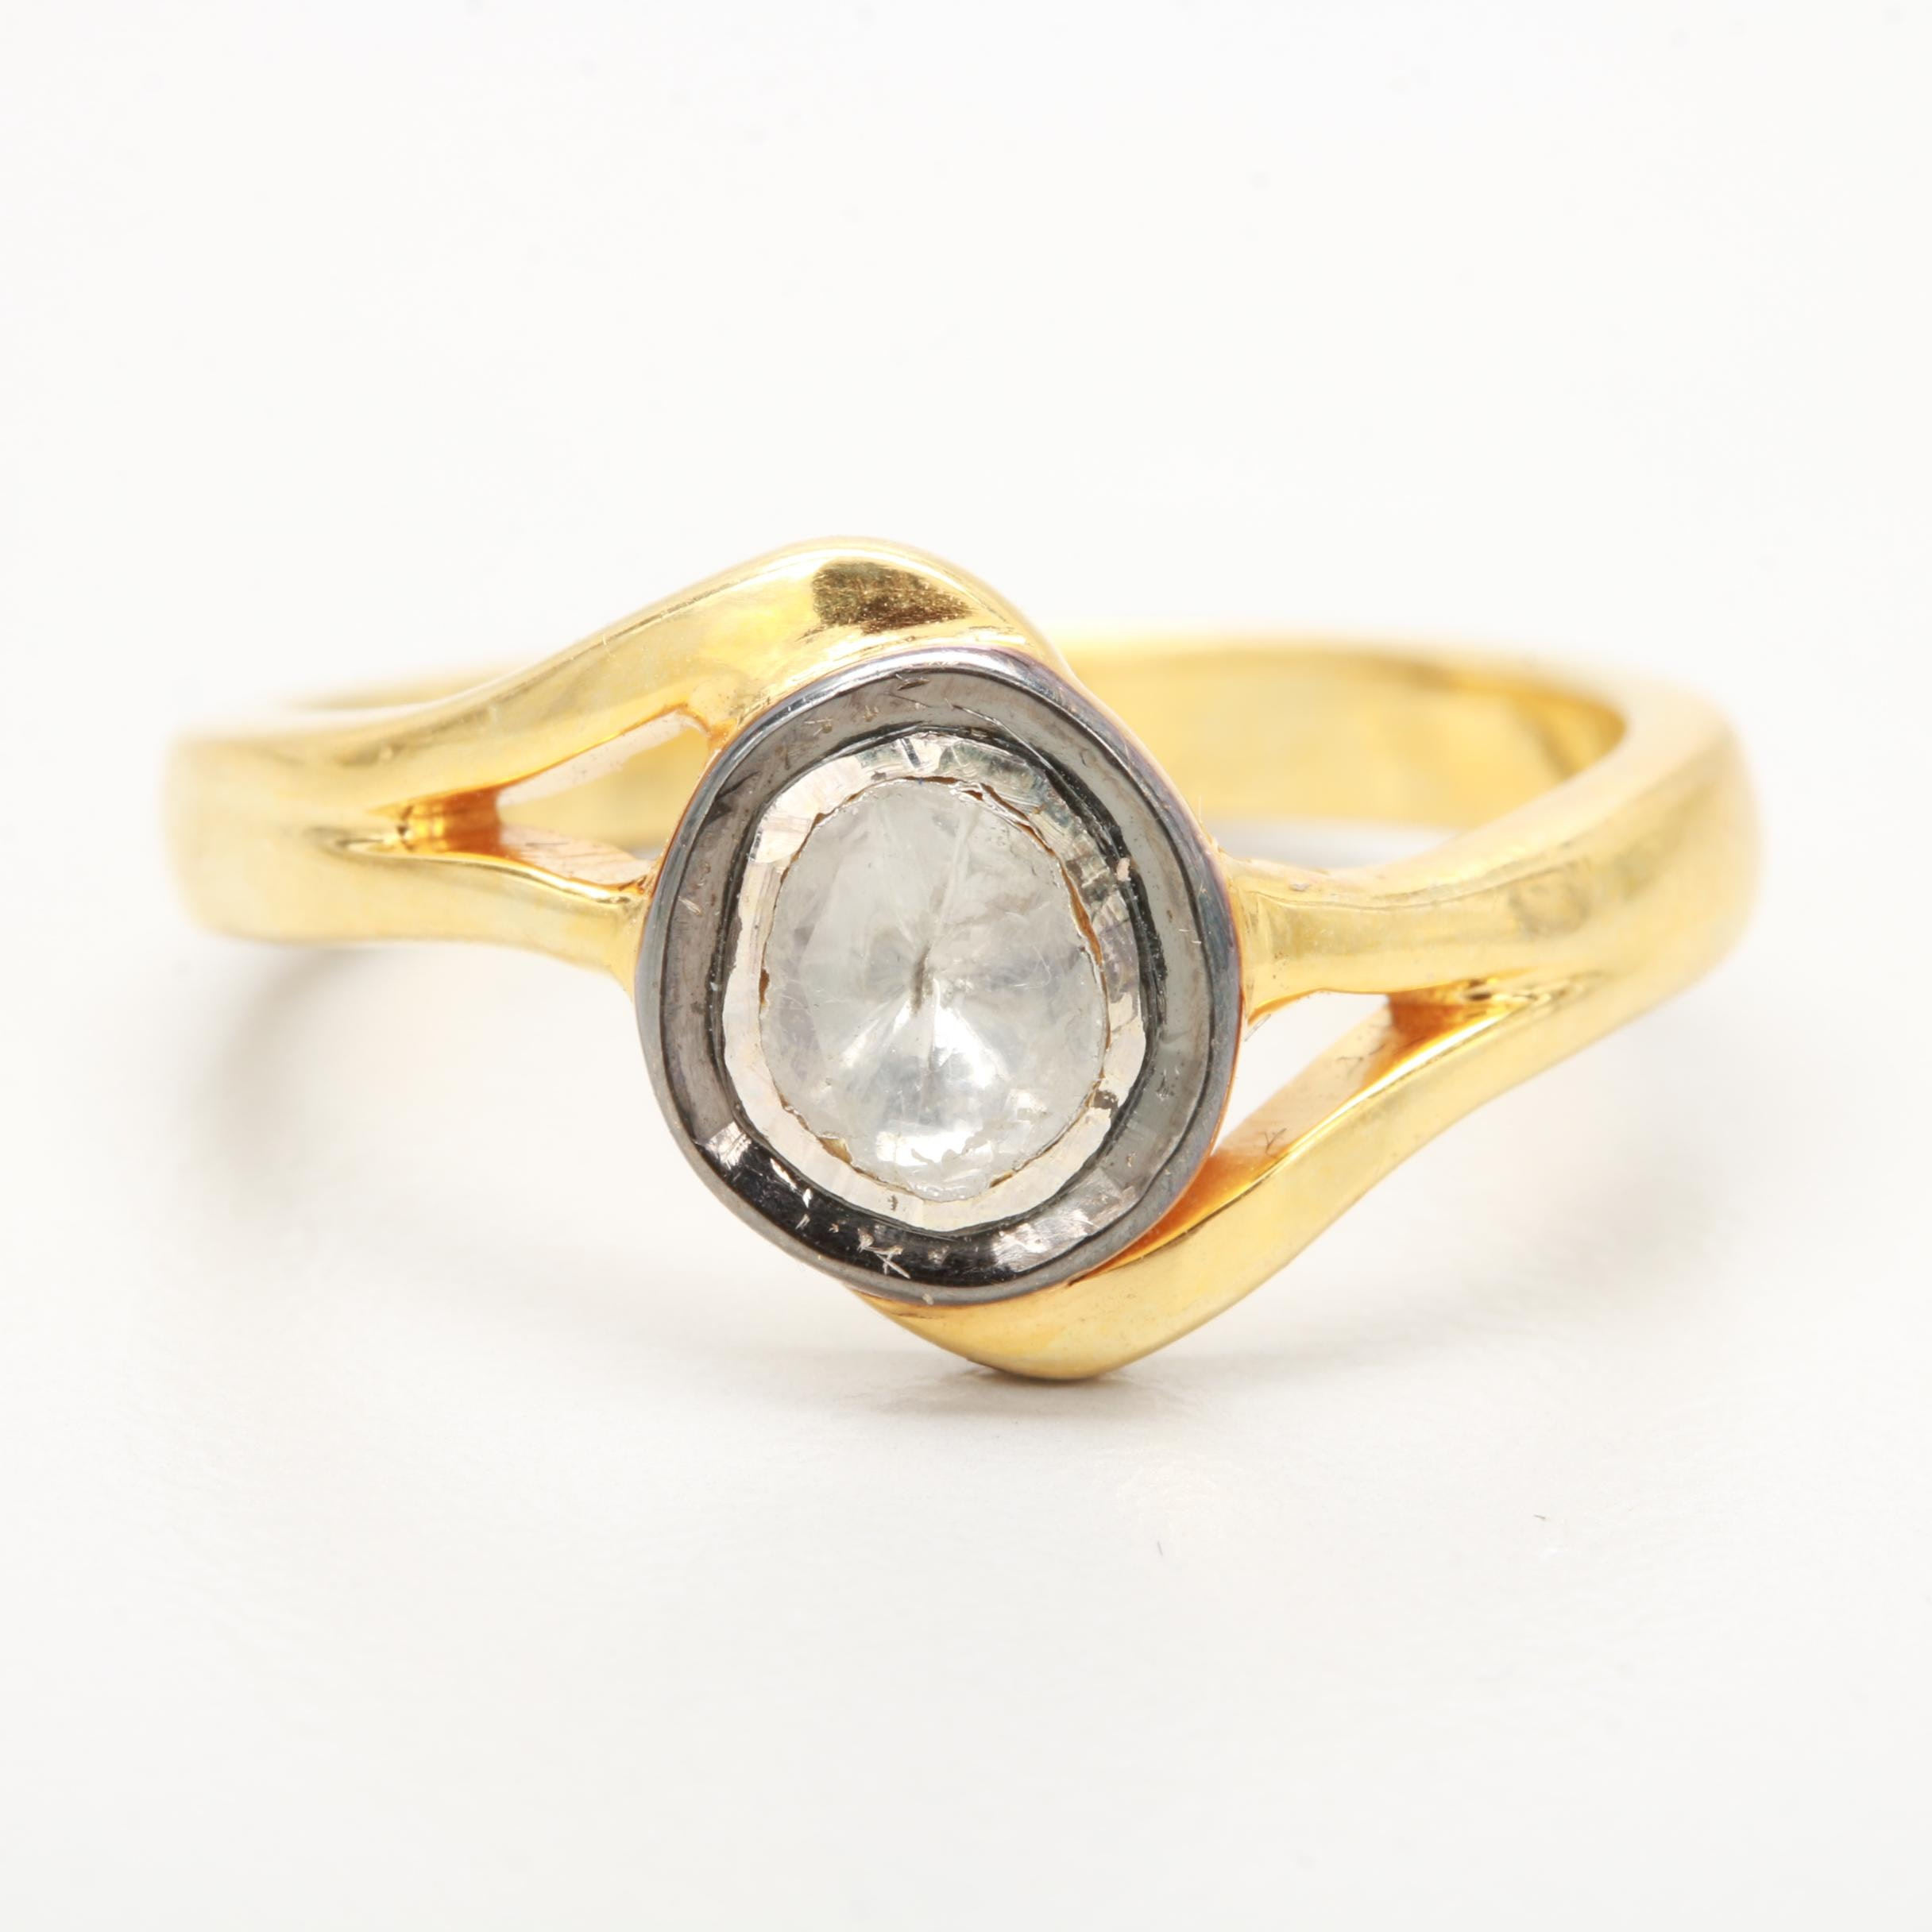 Gold Washed Sterling Silver Diamond Ring